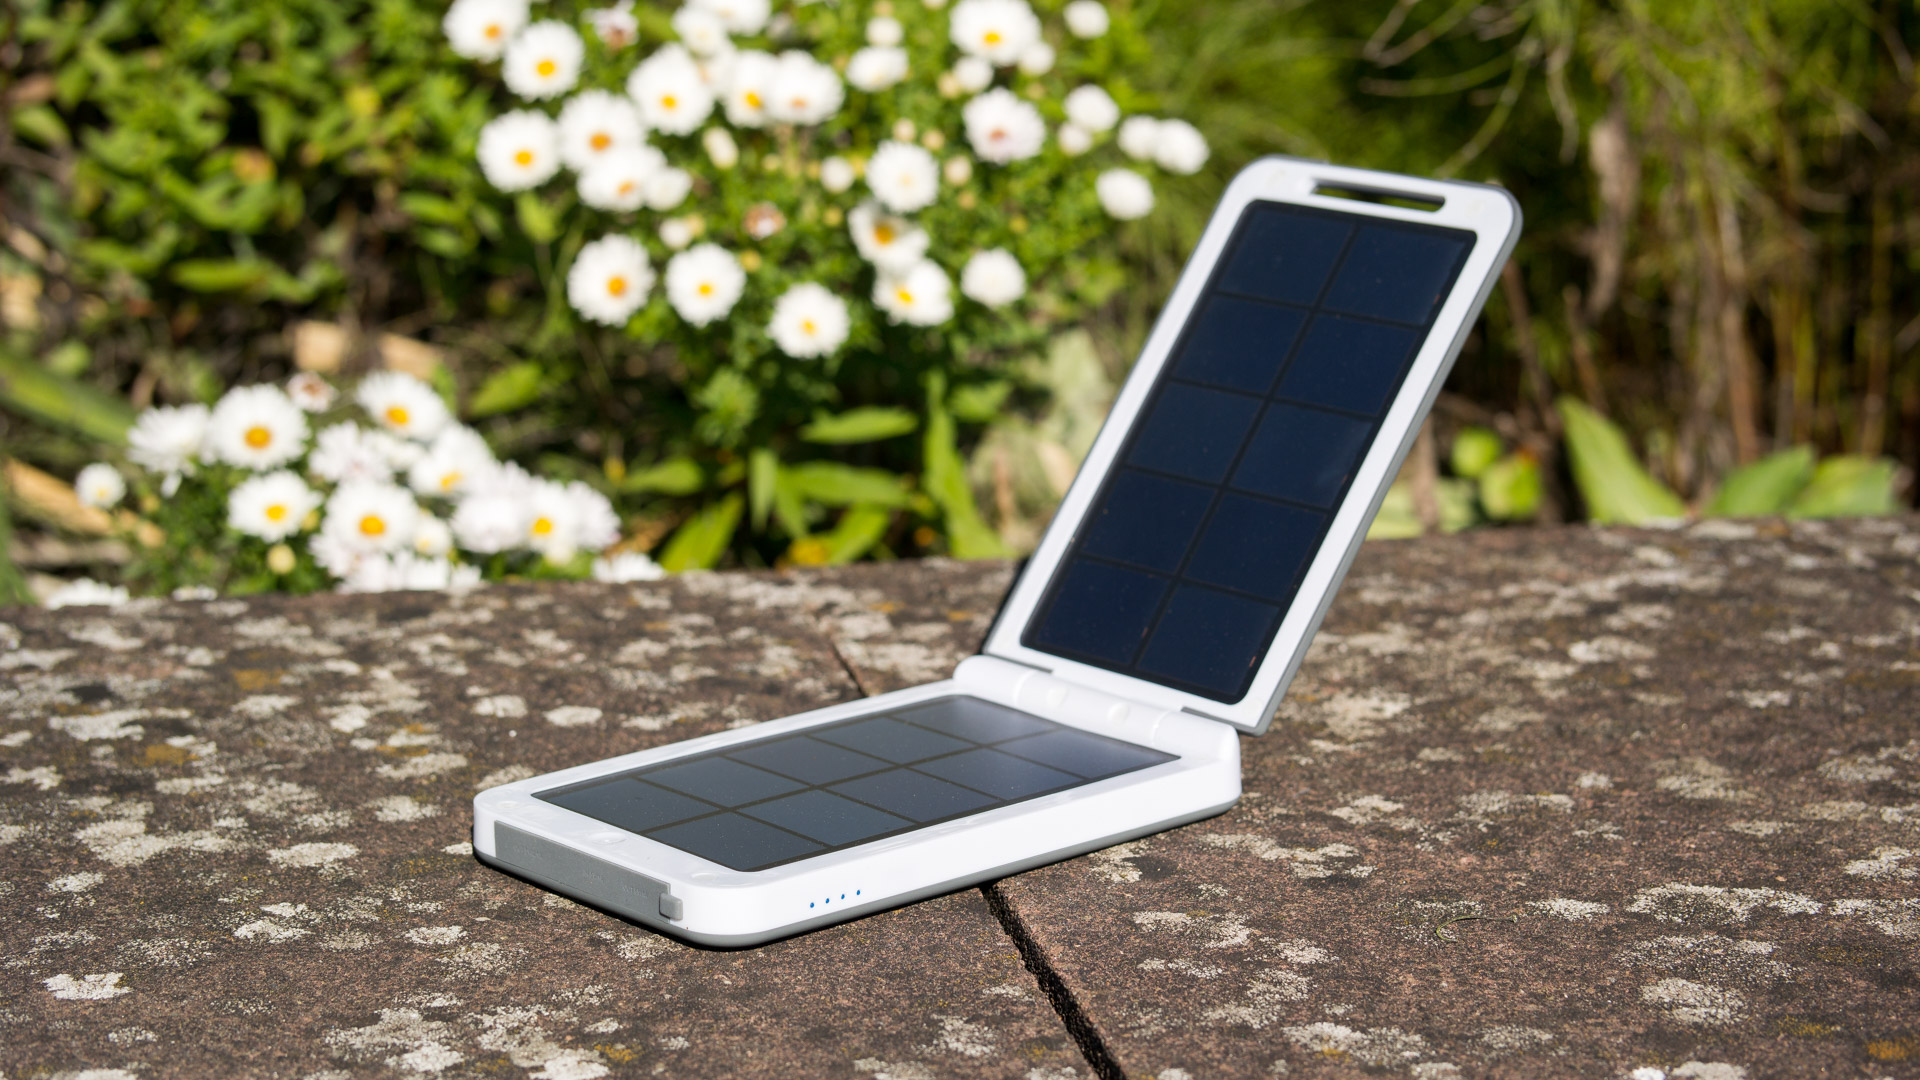 die beste solar powerbank auf dem markt xtorm am120. Black Bedroom Furniture Sets. Home Design Ideas